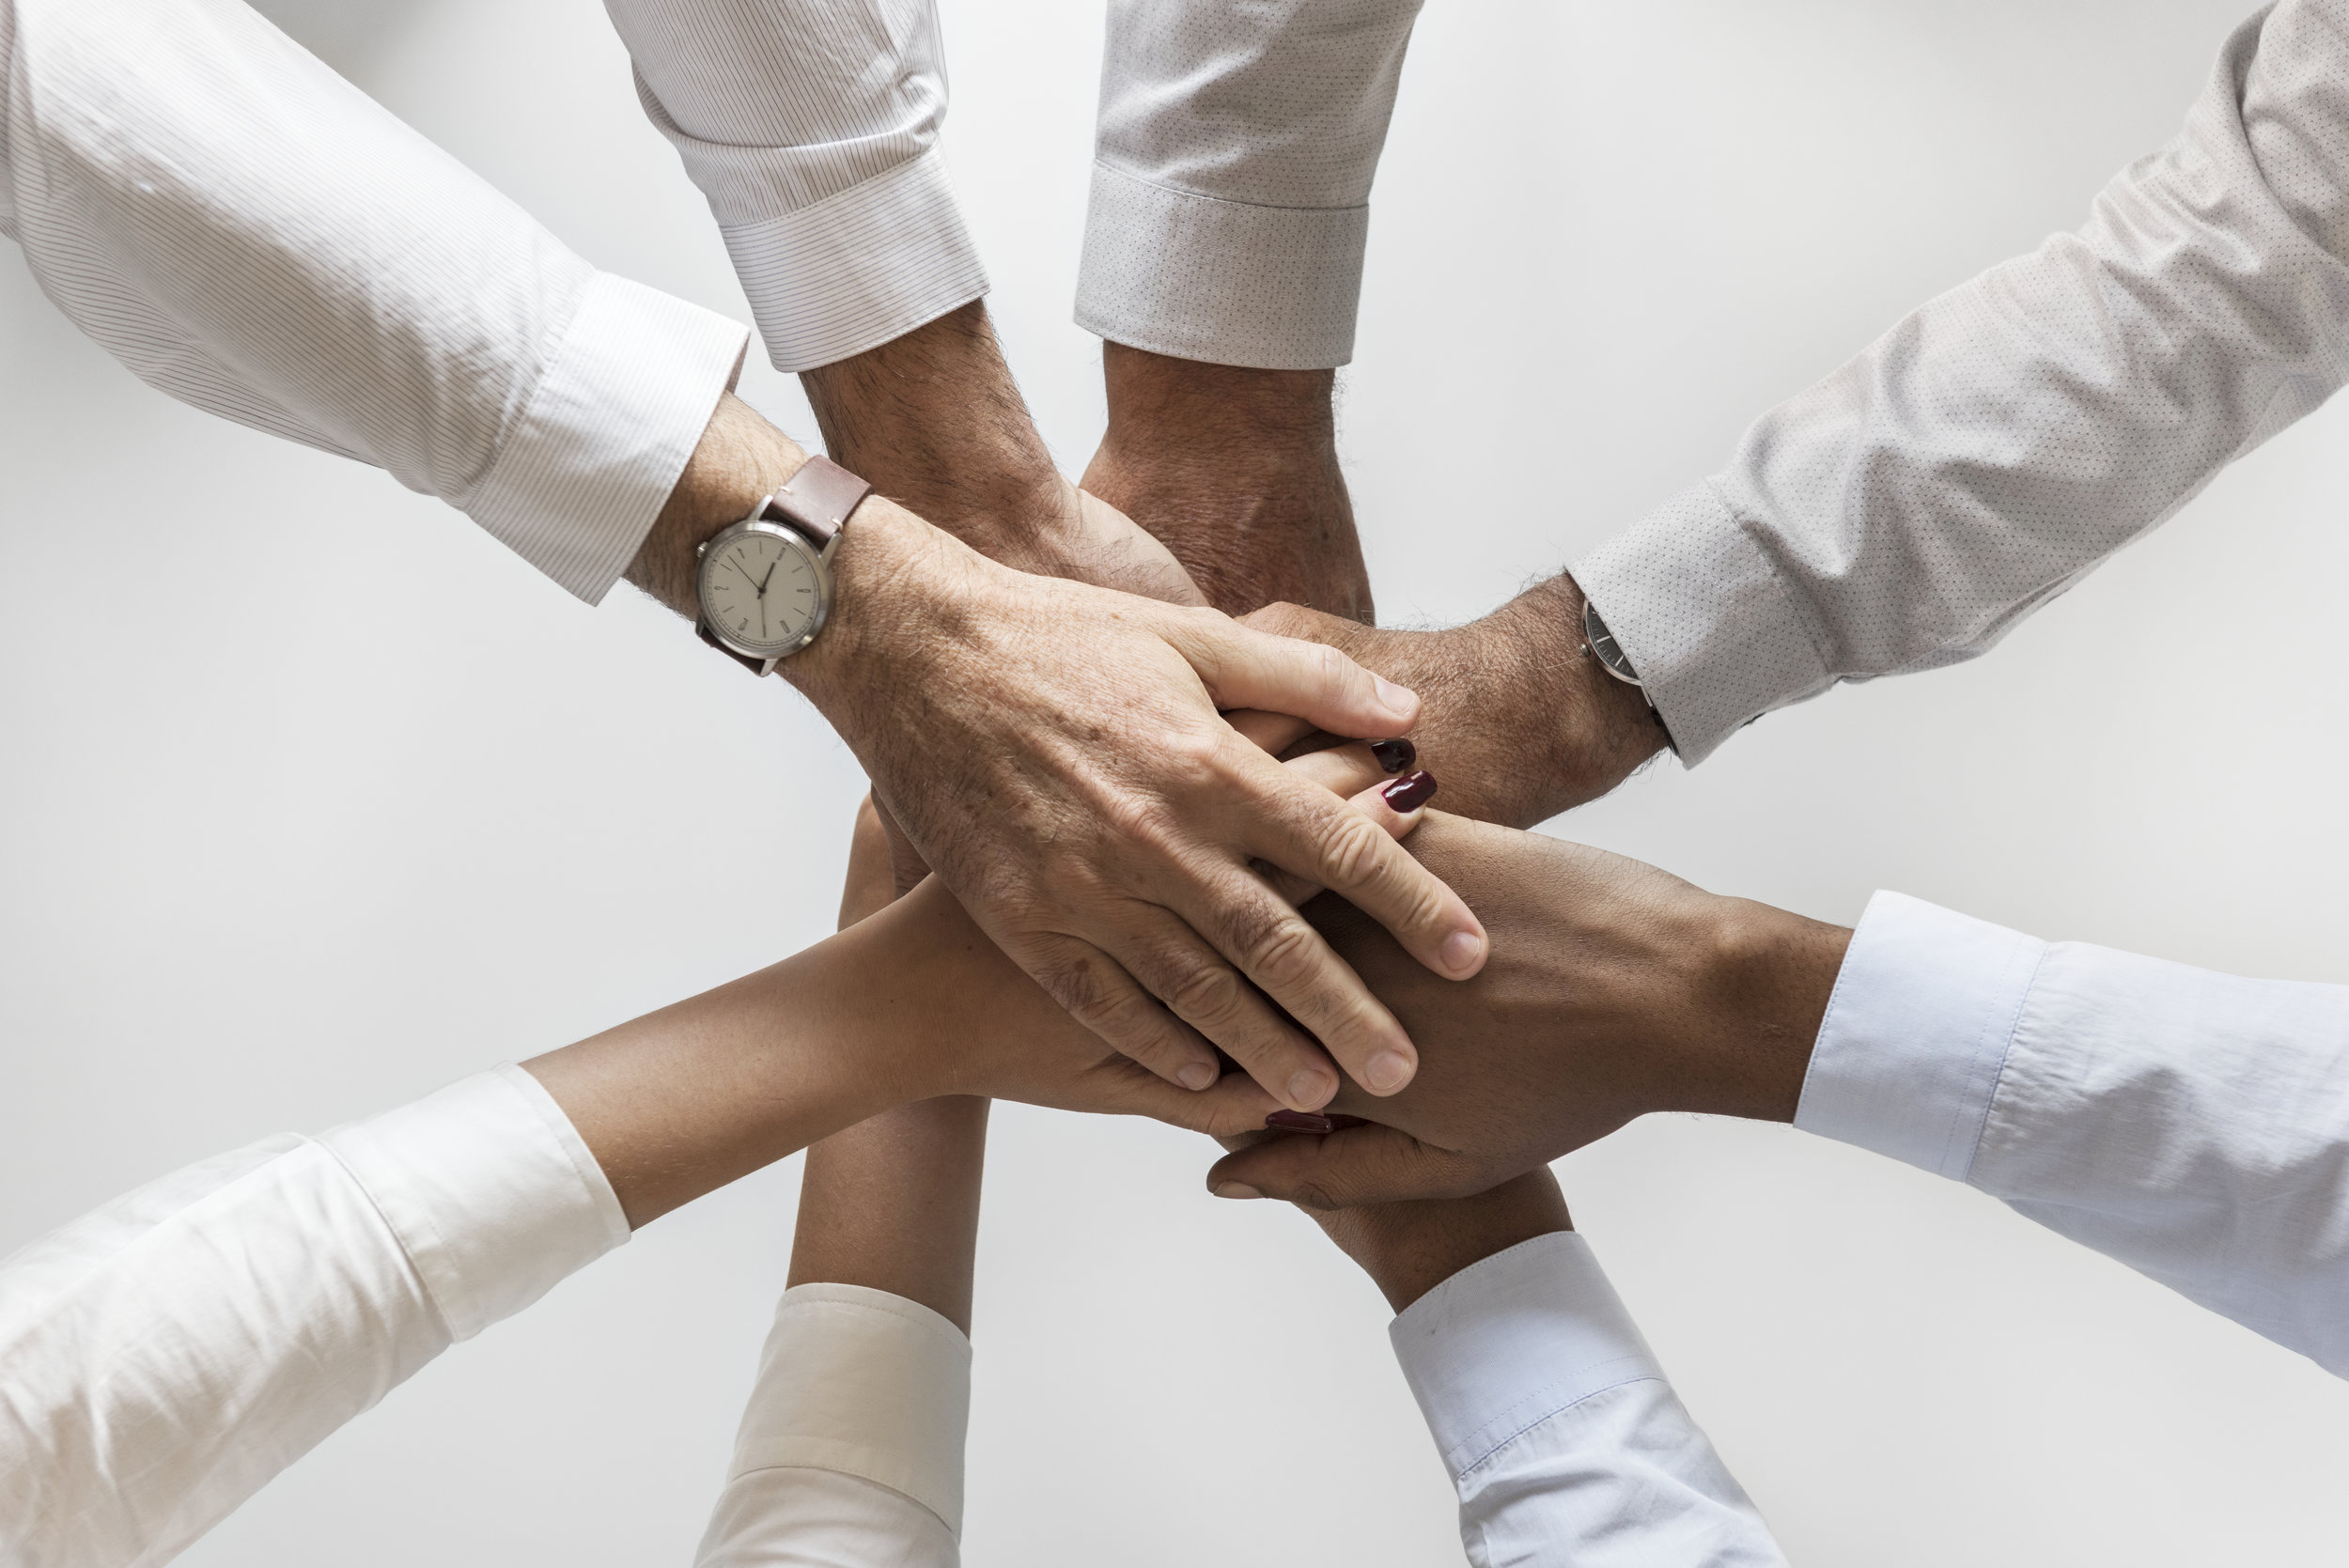 To progress and accomplish goals, NGO's must find ways to encourage and support team work and stakeholder engagement.